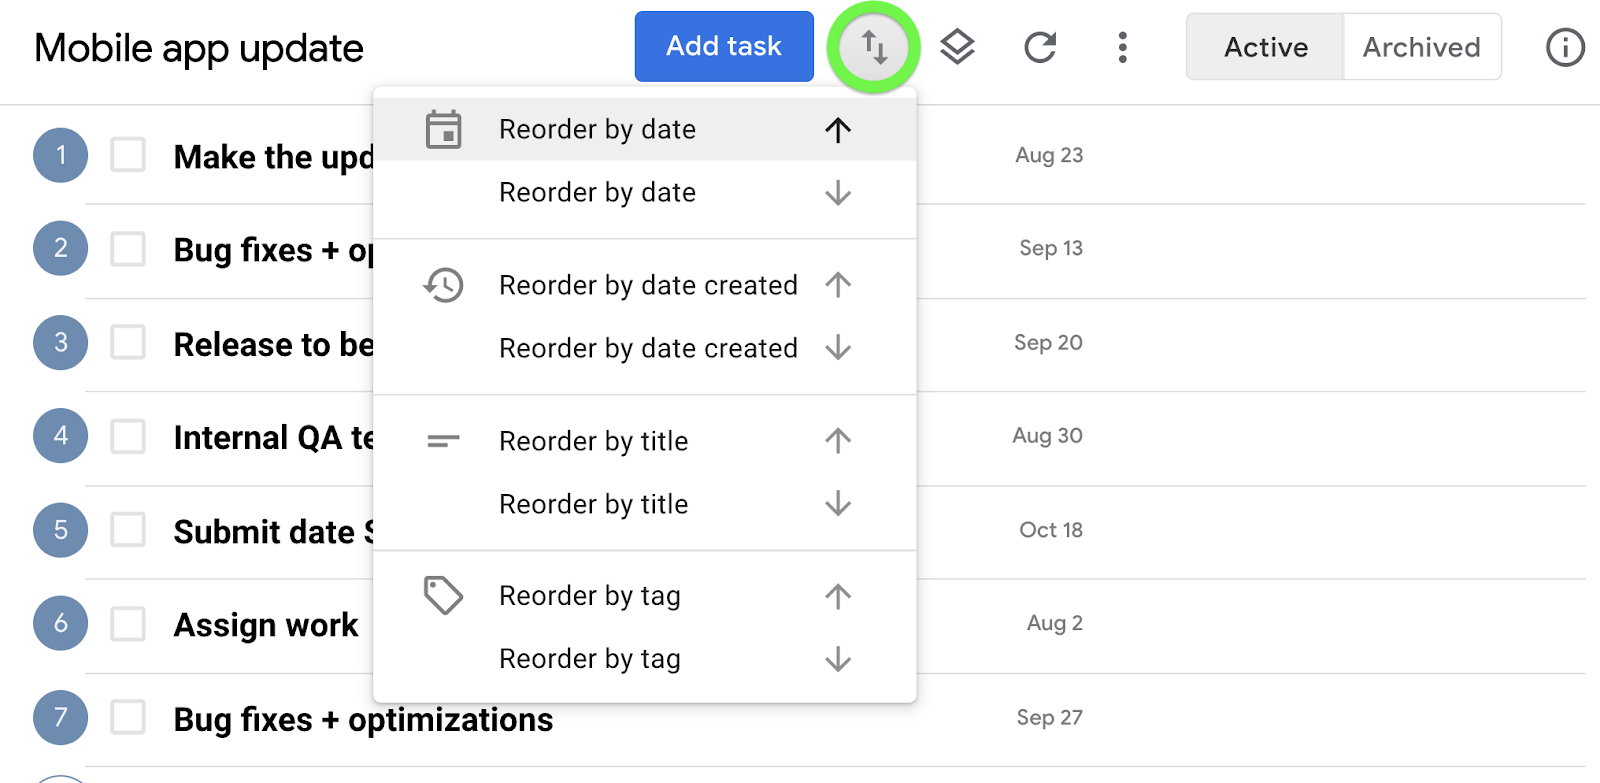 Reorder all tasks within a queue by date, date created, title, or tag